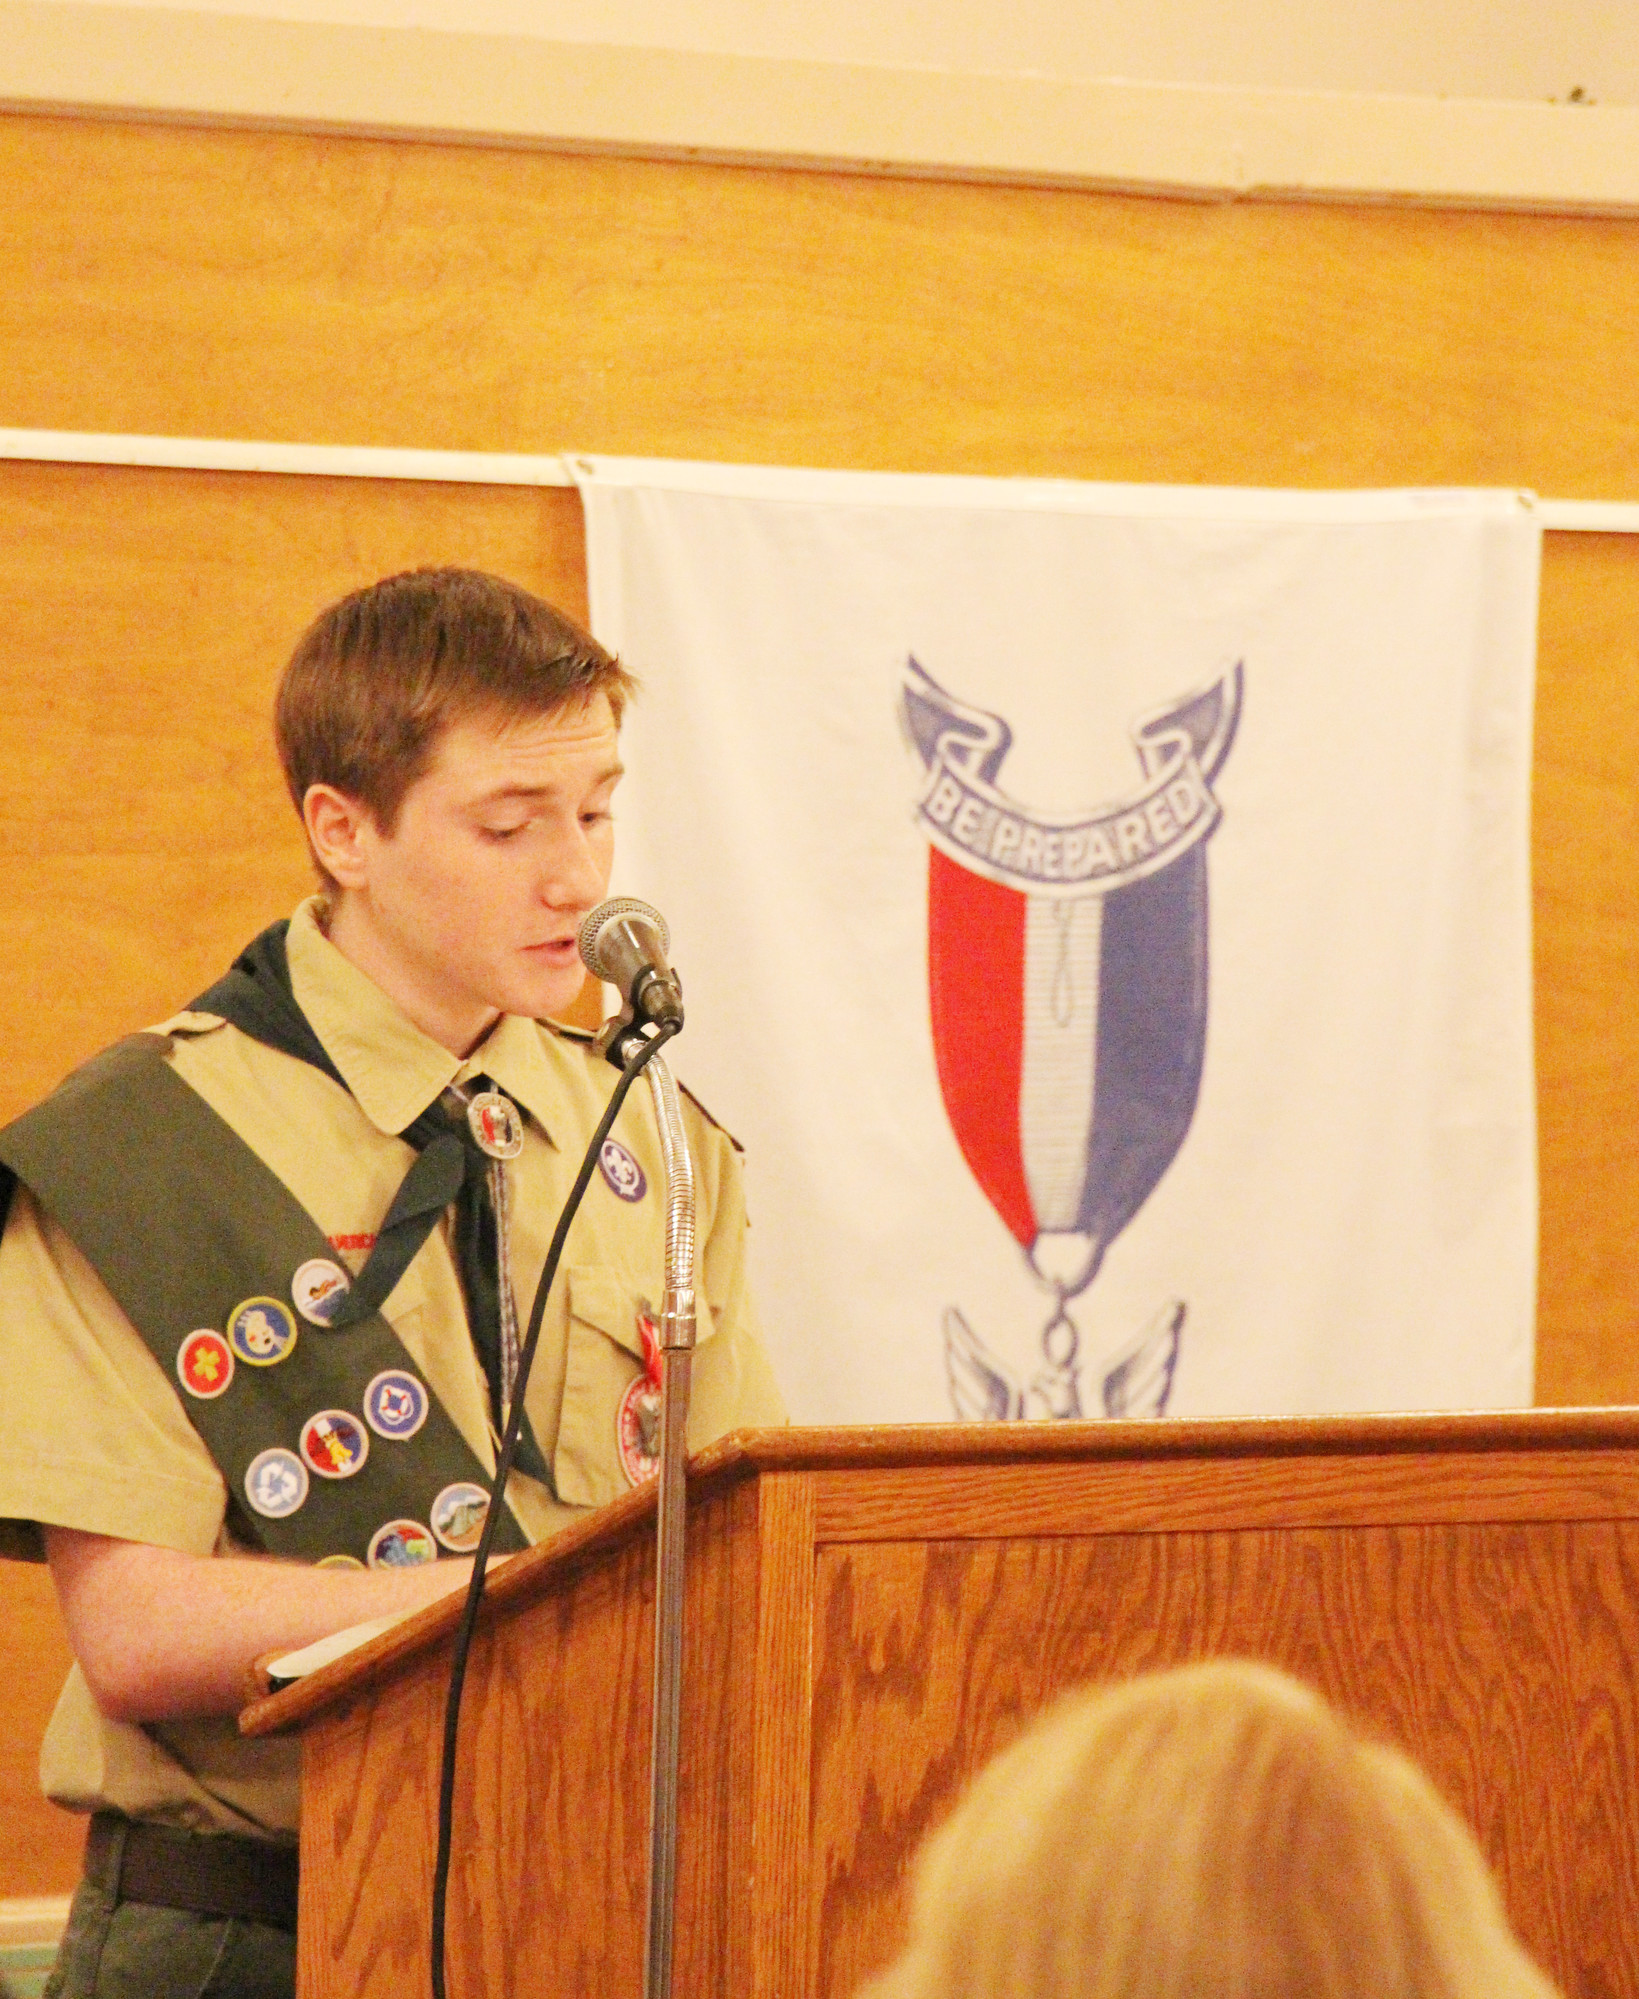 David Santarelli's Response Speech was gave many kind words of gratitude to all who helped him reach Eagle.